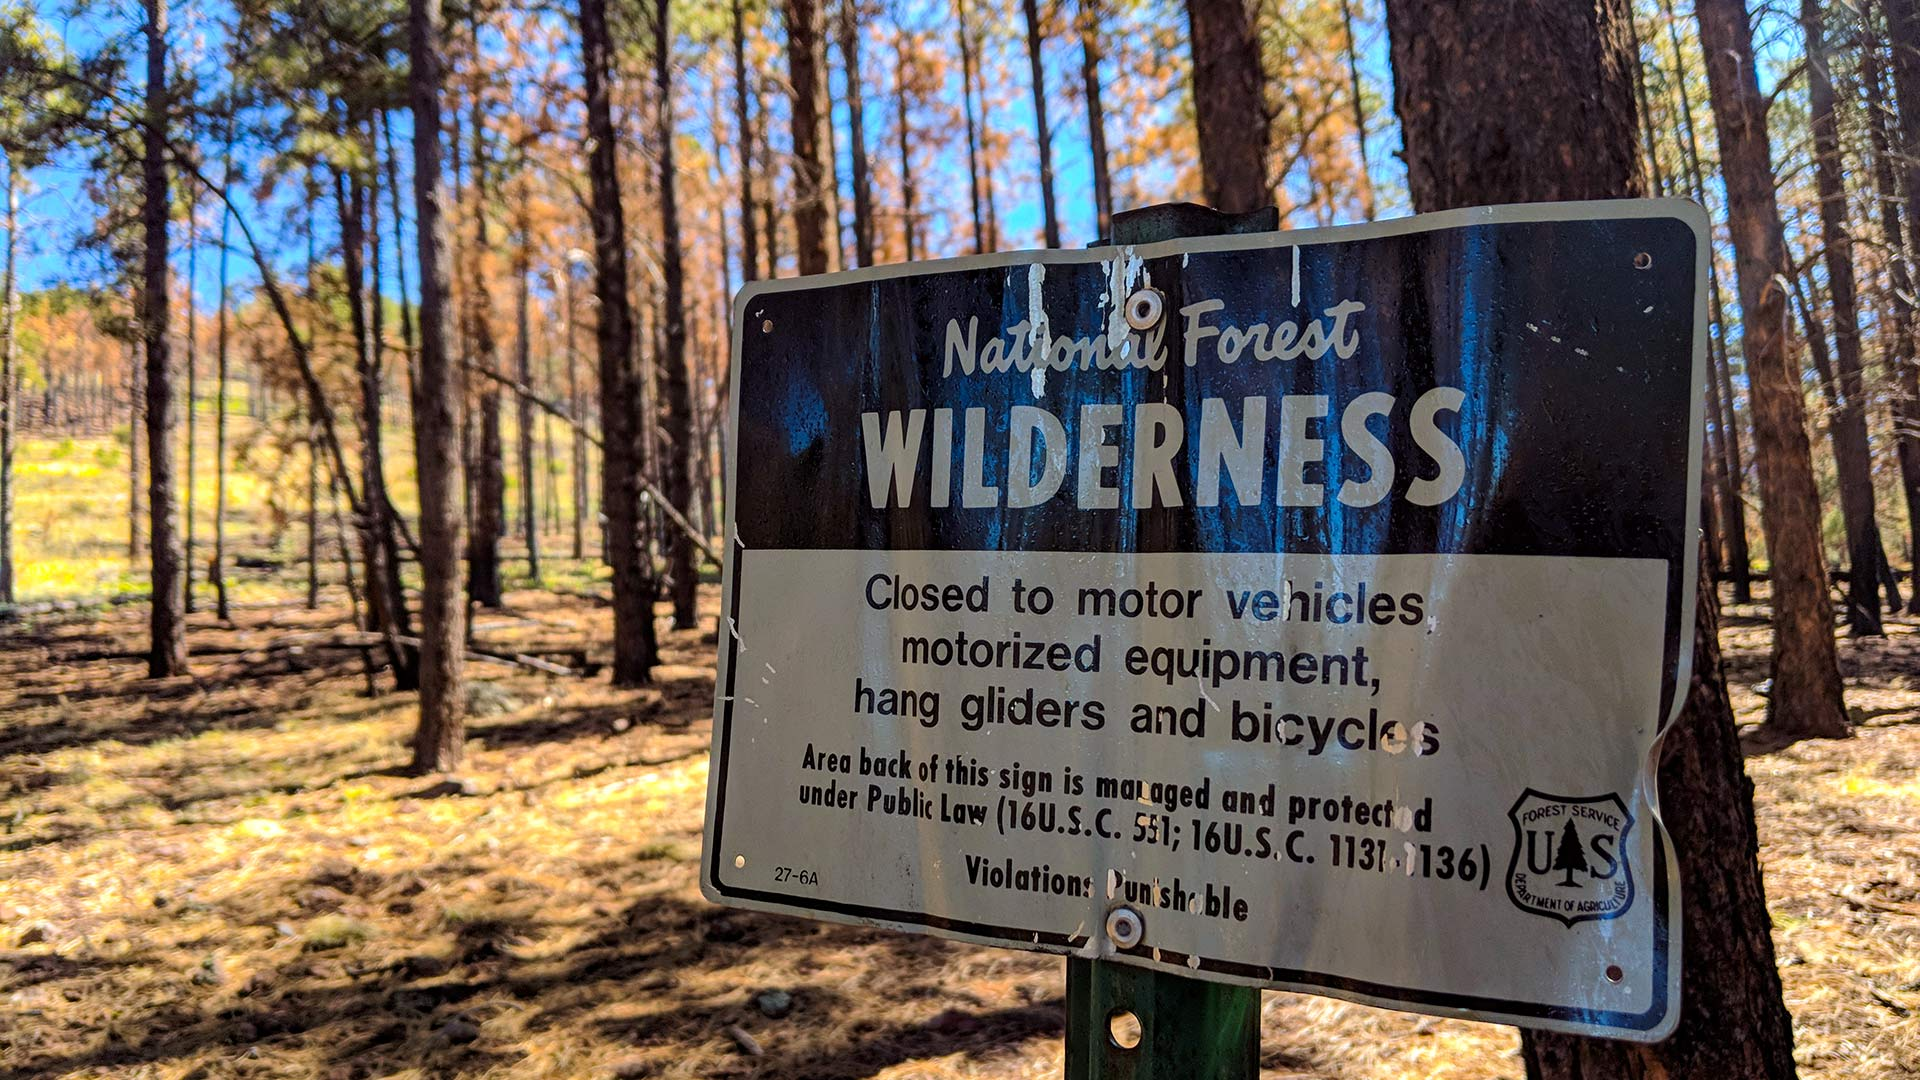 A National Forest wilderness sign in the the Kaibab National Forest, near Kendrick Peak in Northern Arizona.